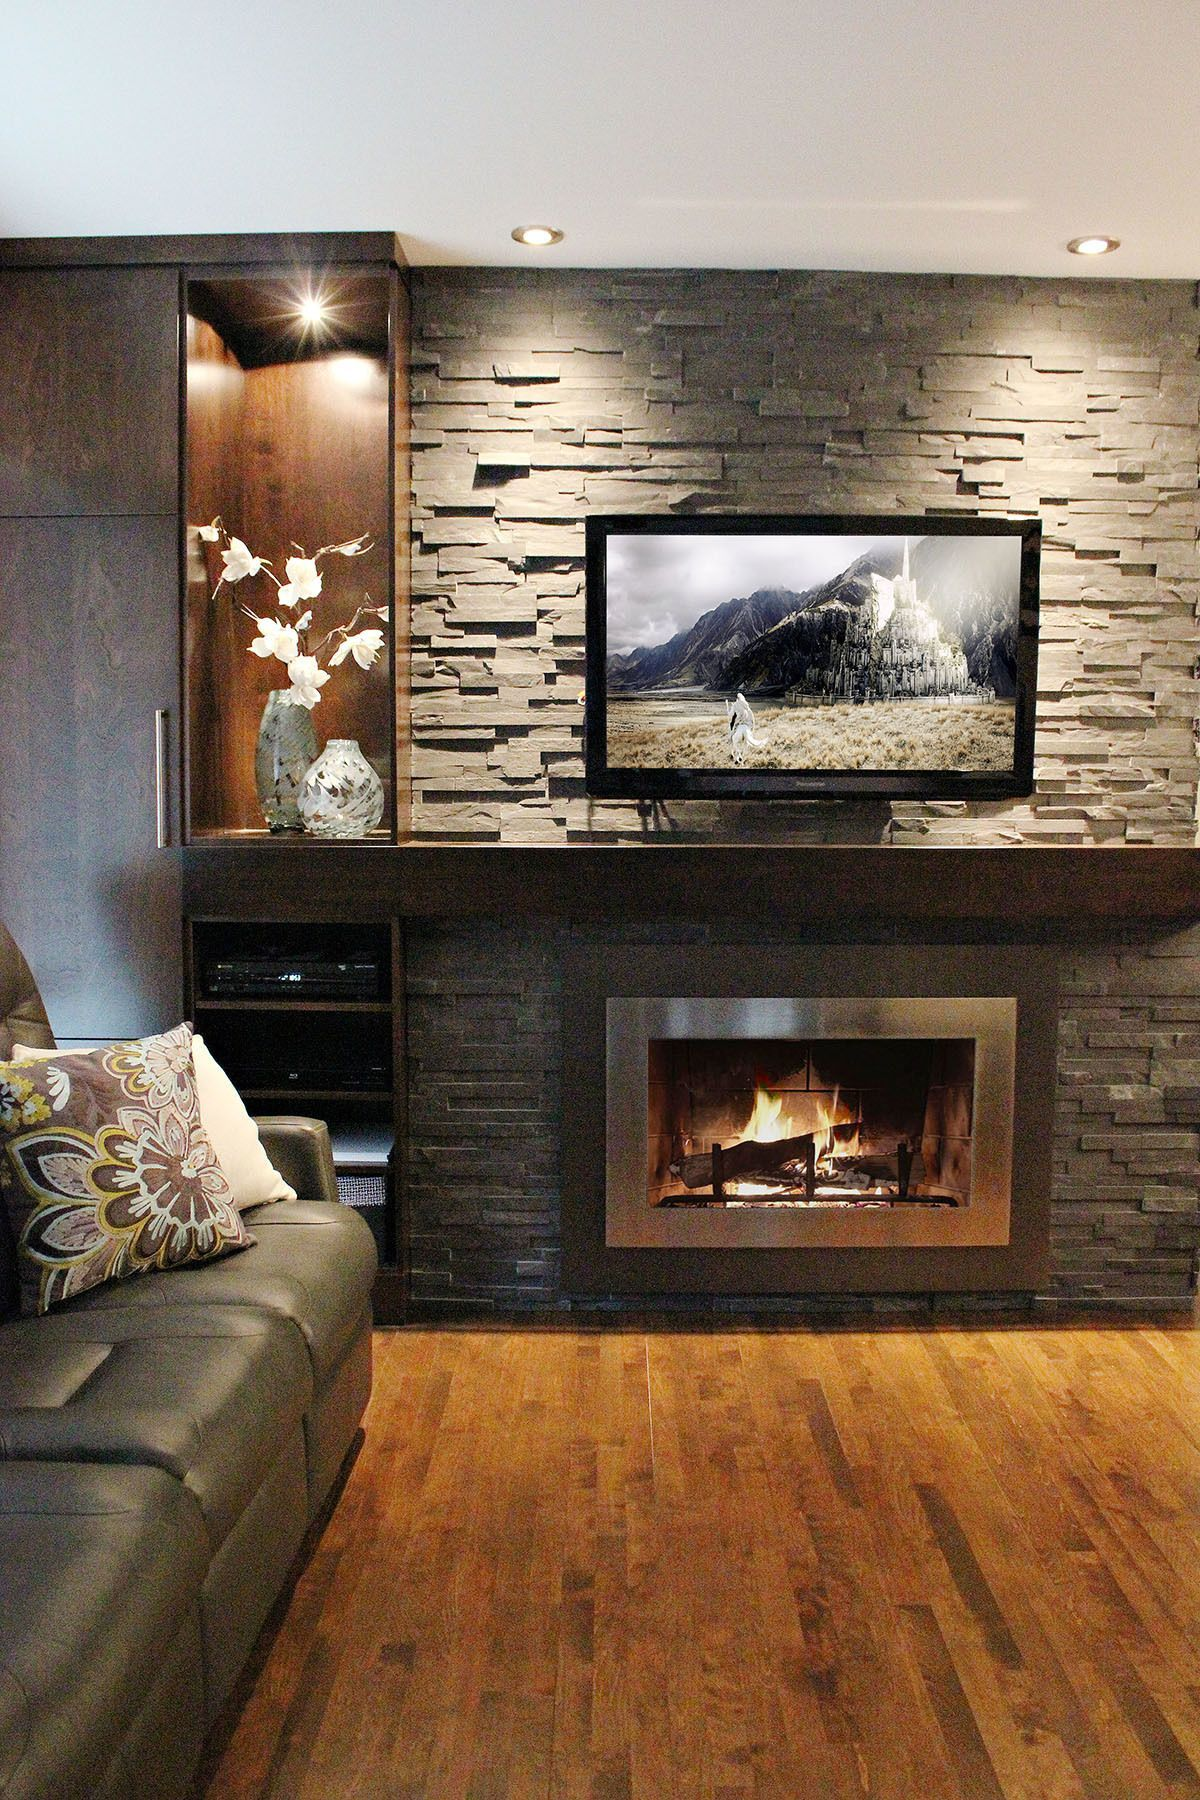 Natural Rock Fireplaces Kicking Back Simpleness A High Impressive Fireplace Is The Centerpiece Of This Ro Family Room Design Home Fireplace Room Design